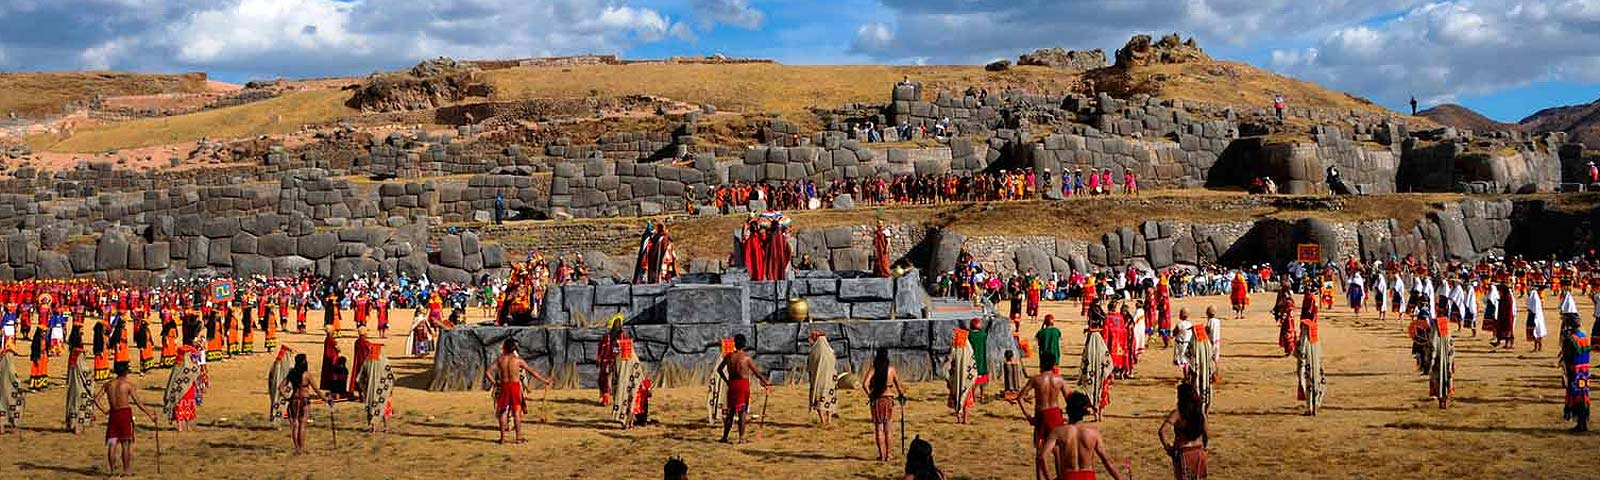 CUSCO E INTI RAYMI 4 DAYS / 3 NIGHTS